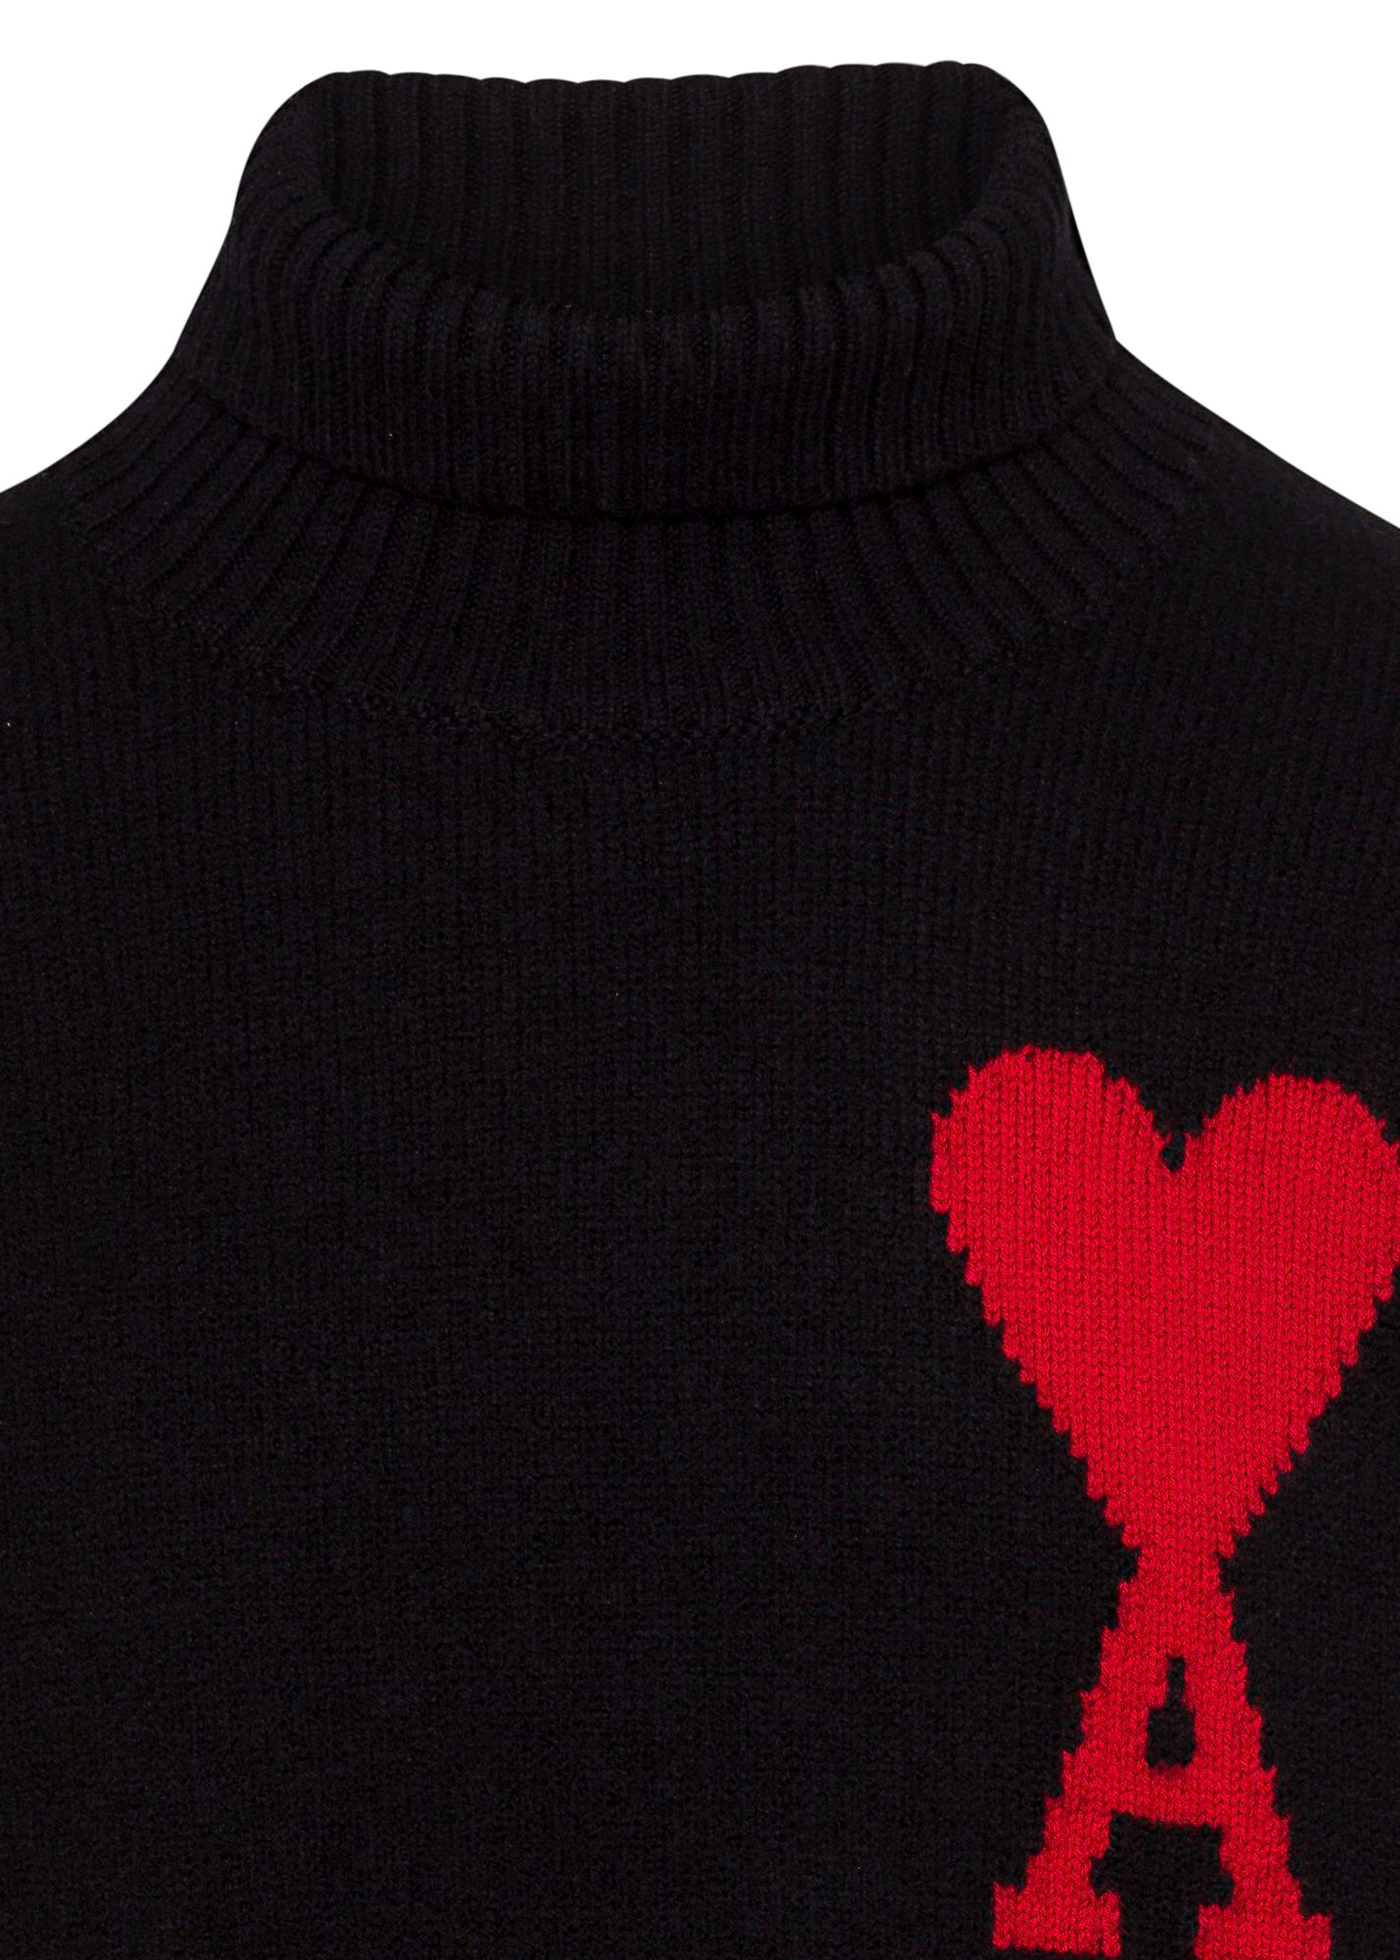 ADC TURTLENECK SWEATER image number 2